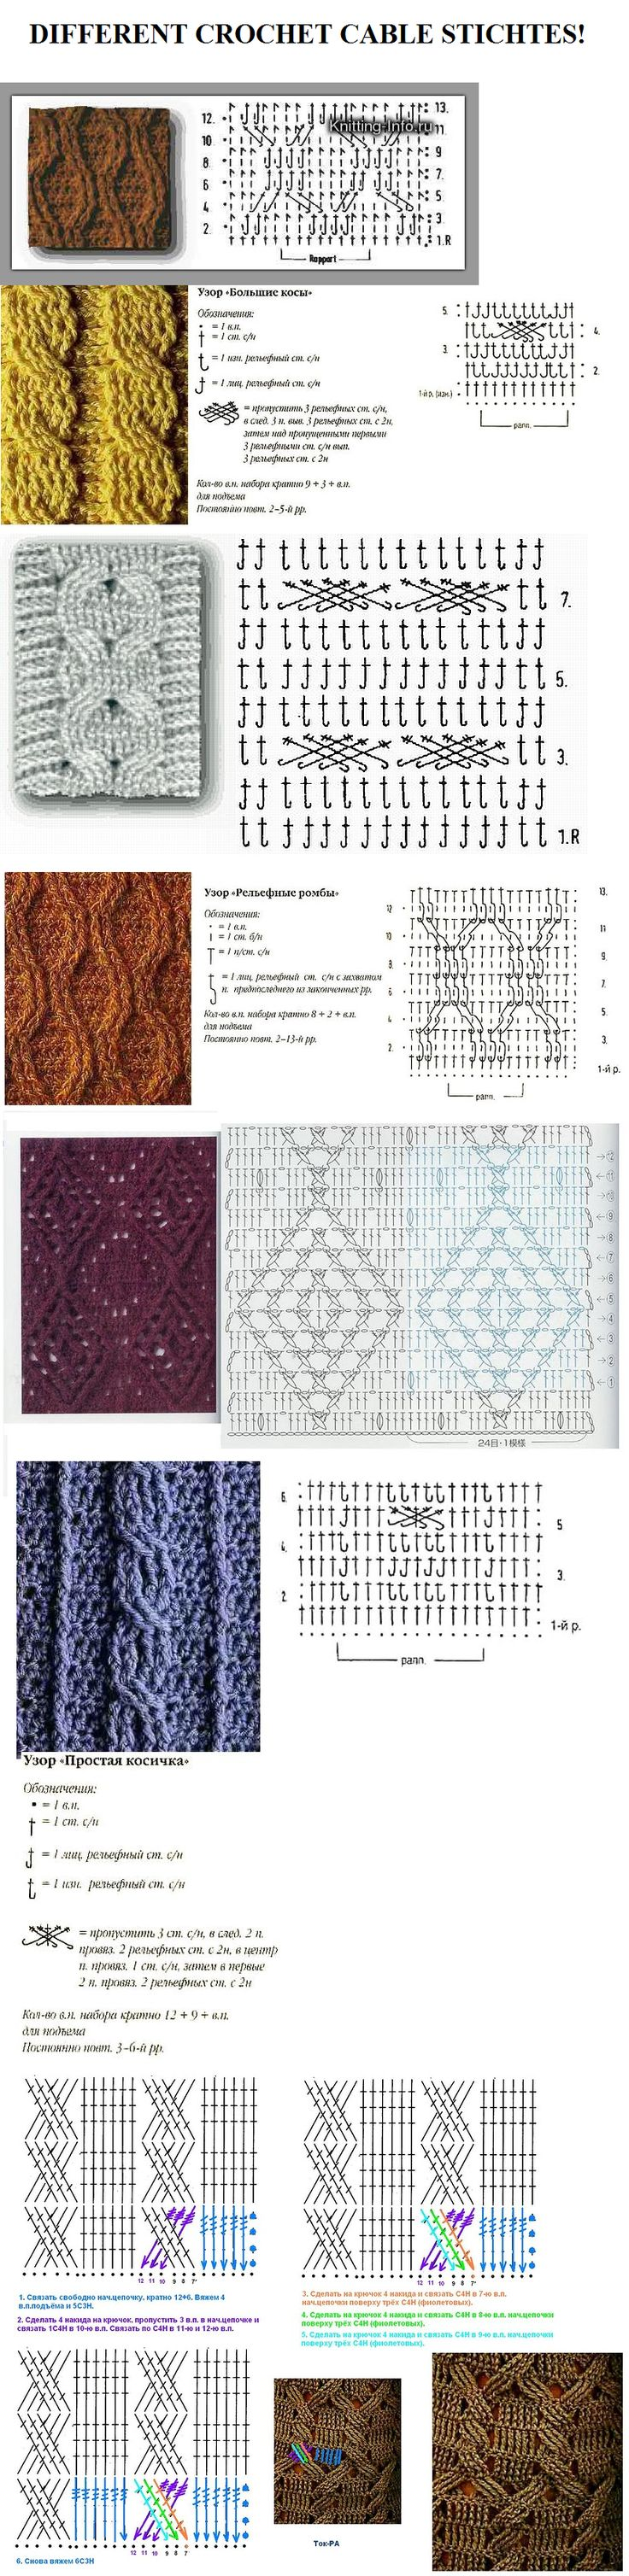 Crochet Stitches Cable : different crochet cable stitches! Horgol?s/Crochet Pinterest